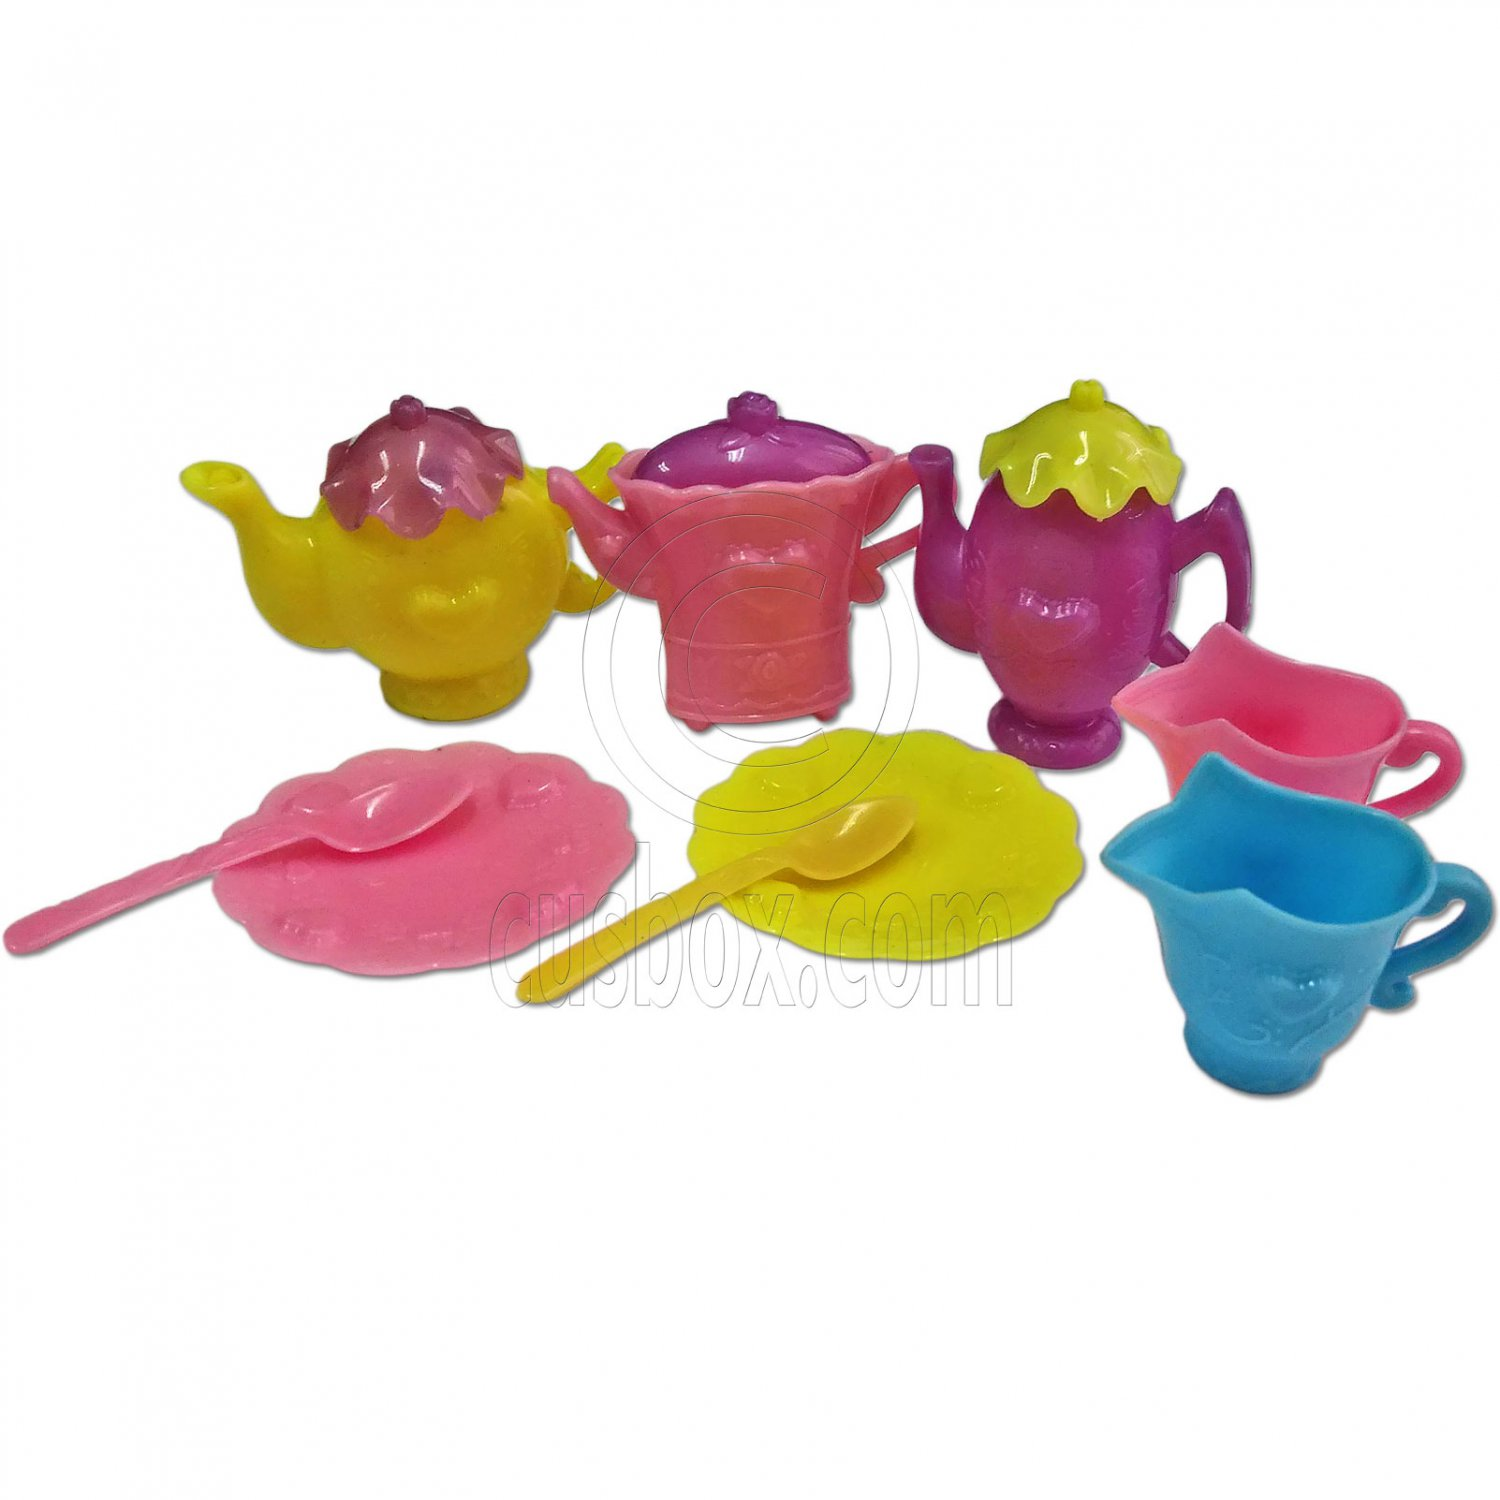 Set Teapot Tea Pot Tableware Spoon Saucer 1:6 Scale Barbie Monster High Doll's #13146